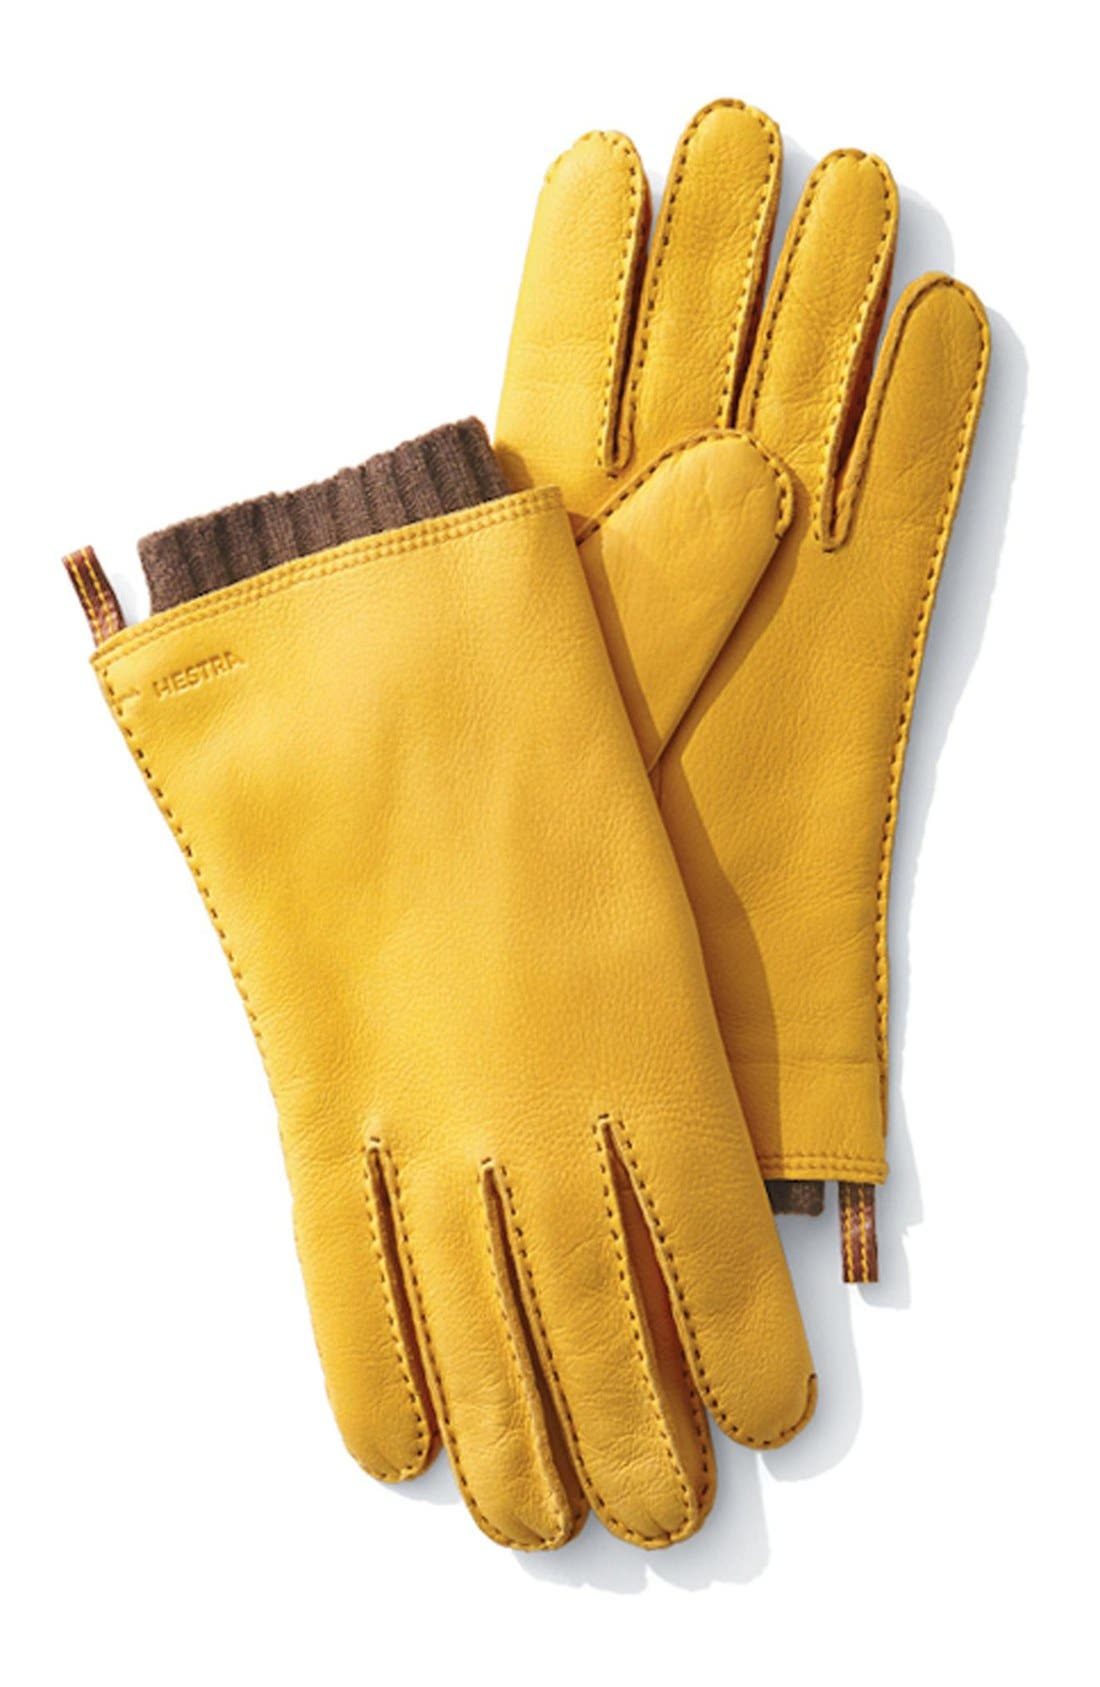 'Tor' Leather Gloves,                             Alternate thumbnail 4, color,                             DARK FOREST/ NATURAL YELLOW